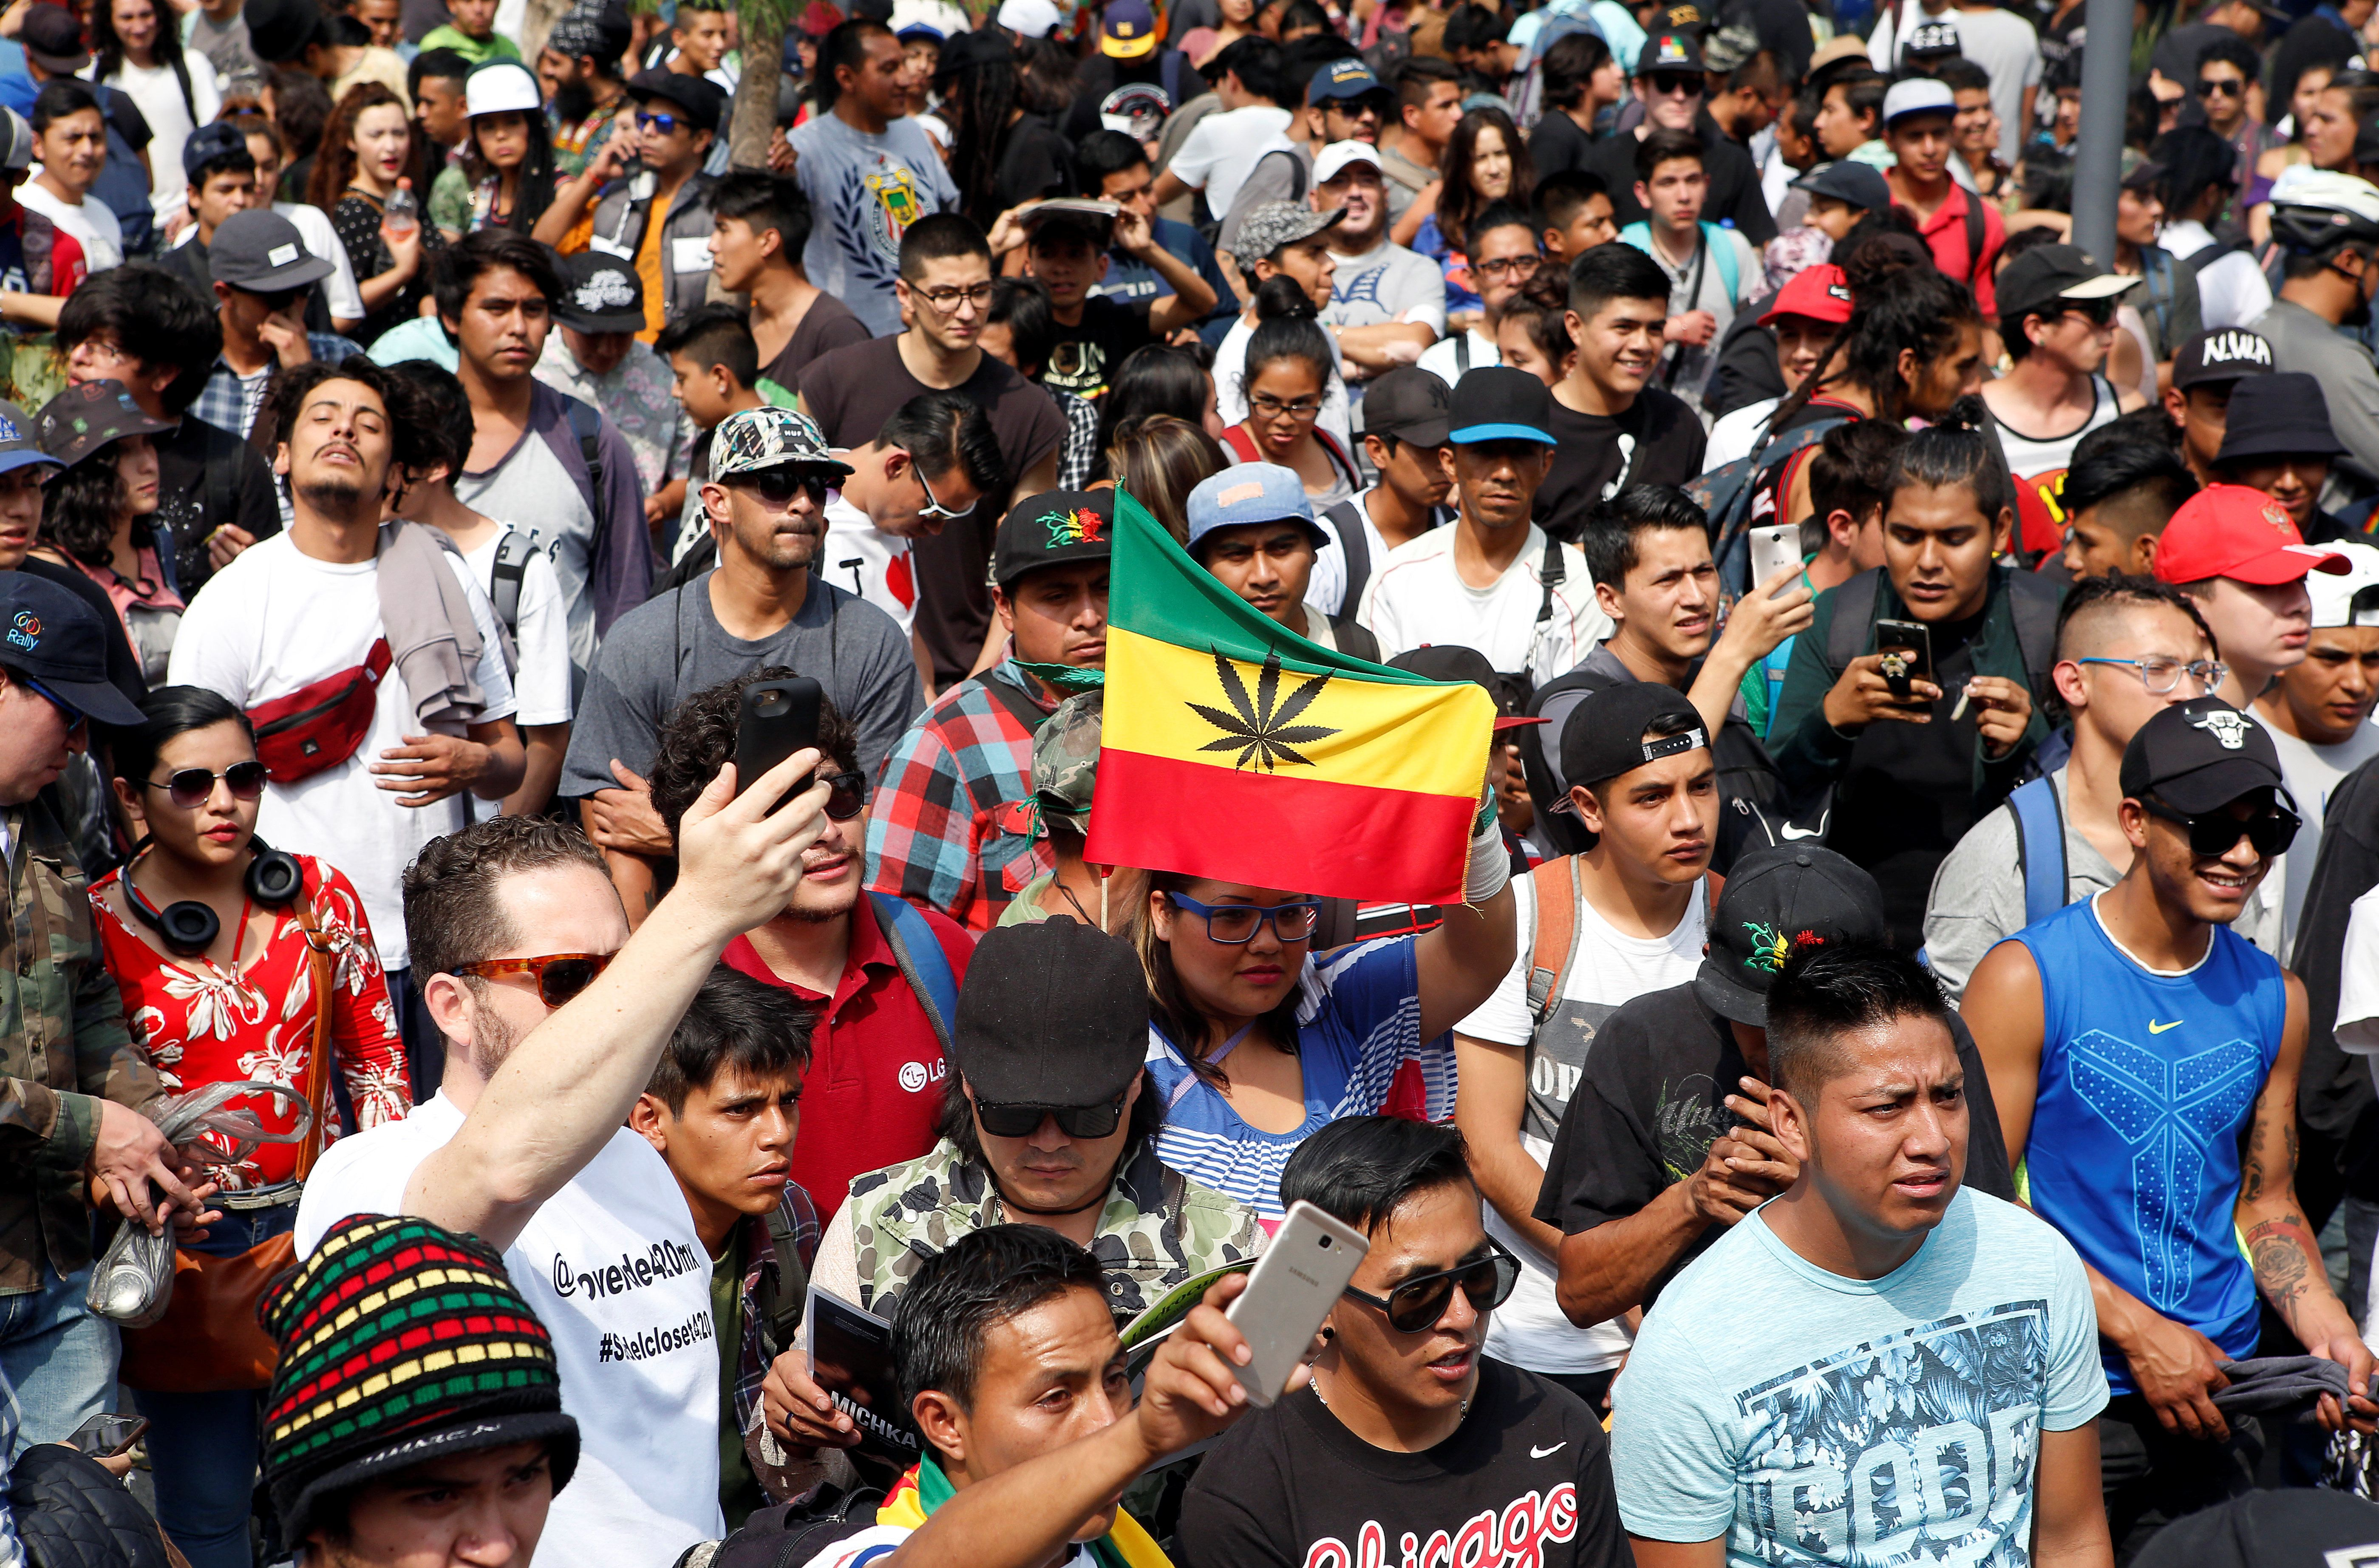 People take part in a march through the streets in support of the legalization of marijuana, in Mexico City, Mexico May 5, 2018.REUTERS/Ginnette Riquelme